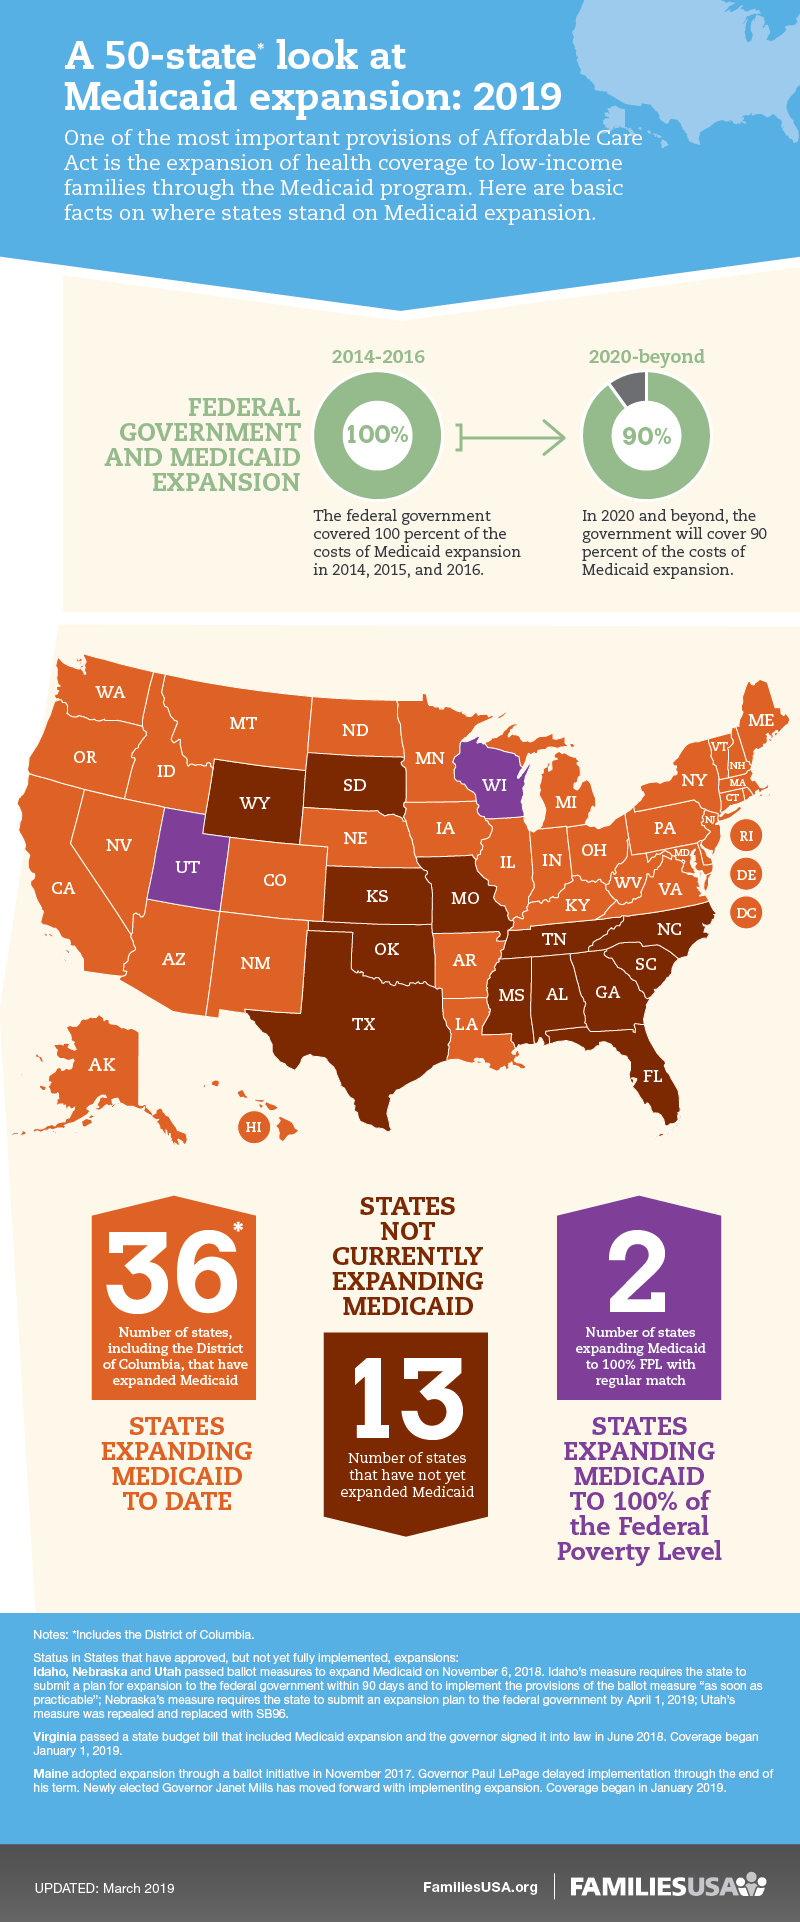 https://familiesusa.org/wp-content/uploads/2018/11/MCD_Medicaid-Expansion-50state-Map_Infographic_030819_infographic.png